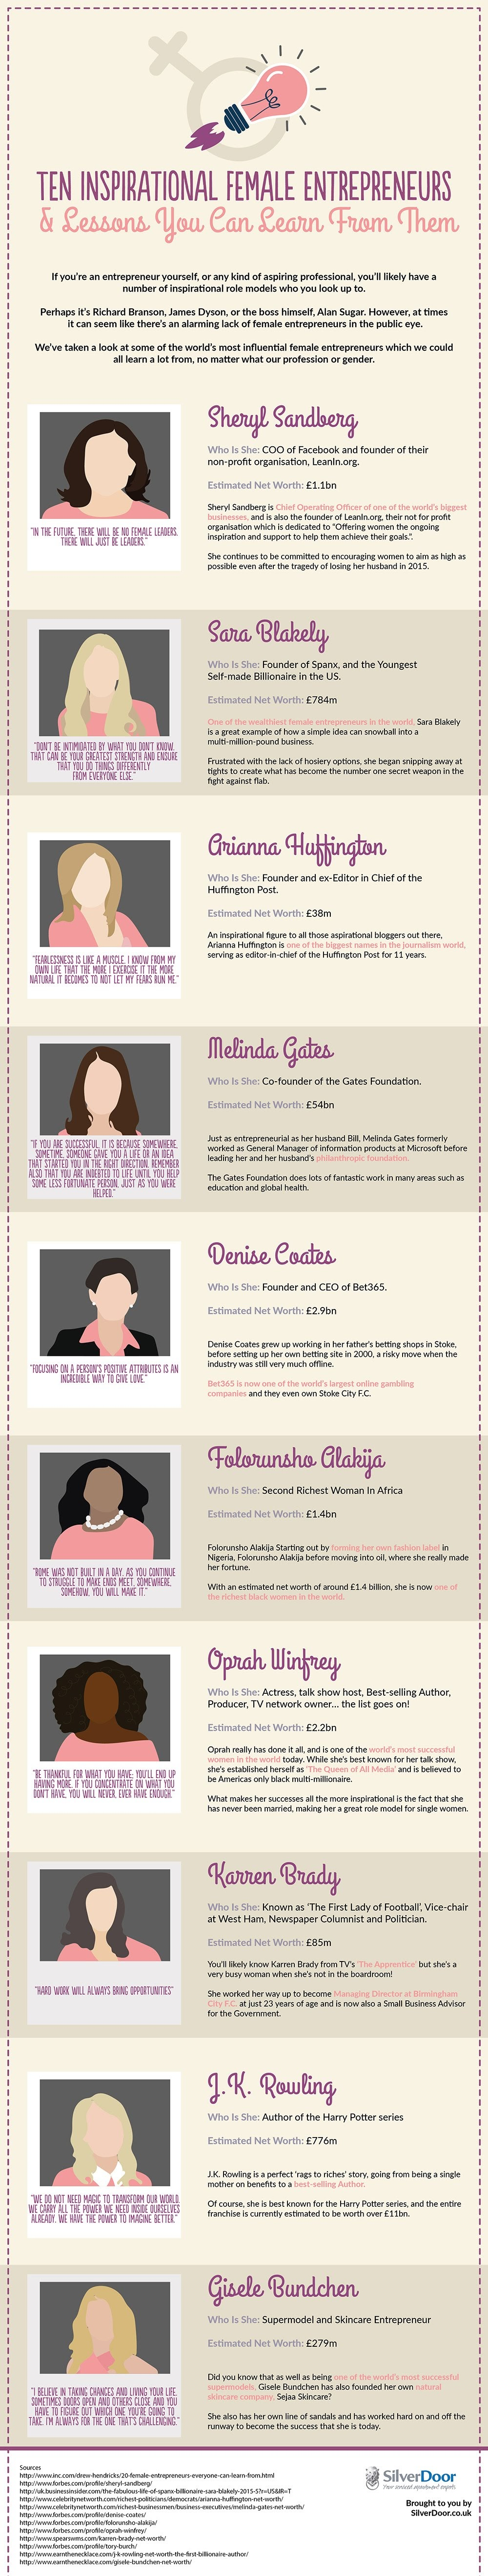 10 Inspirational Female Entrepreneurs & Lessons You Can Learn From Them #Infographic